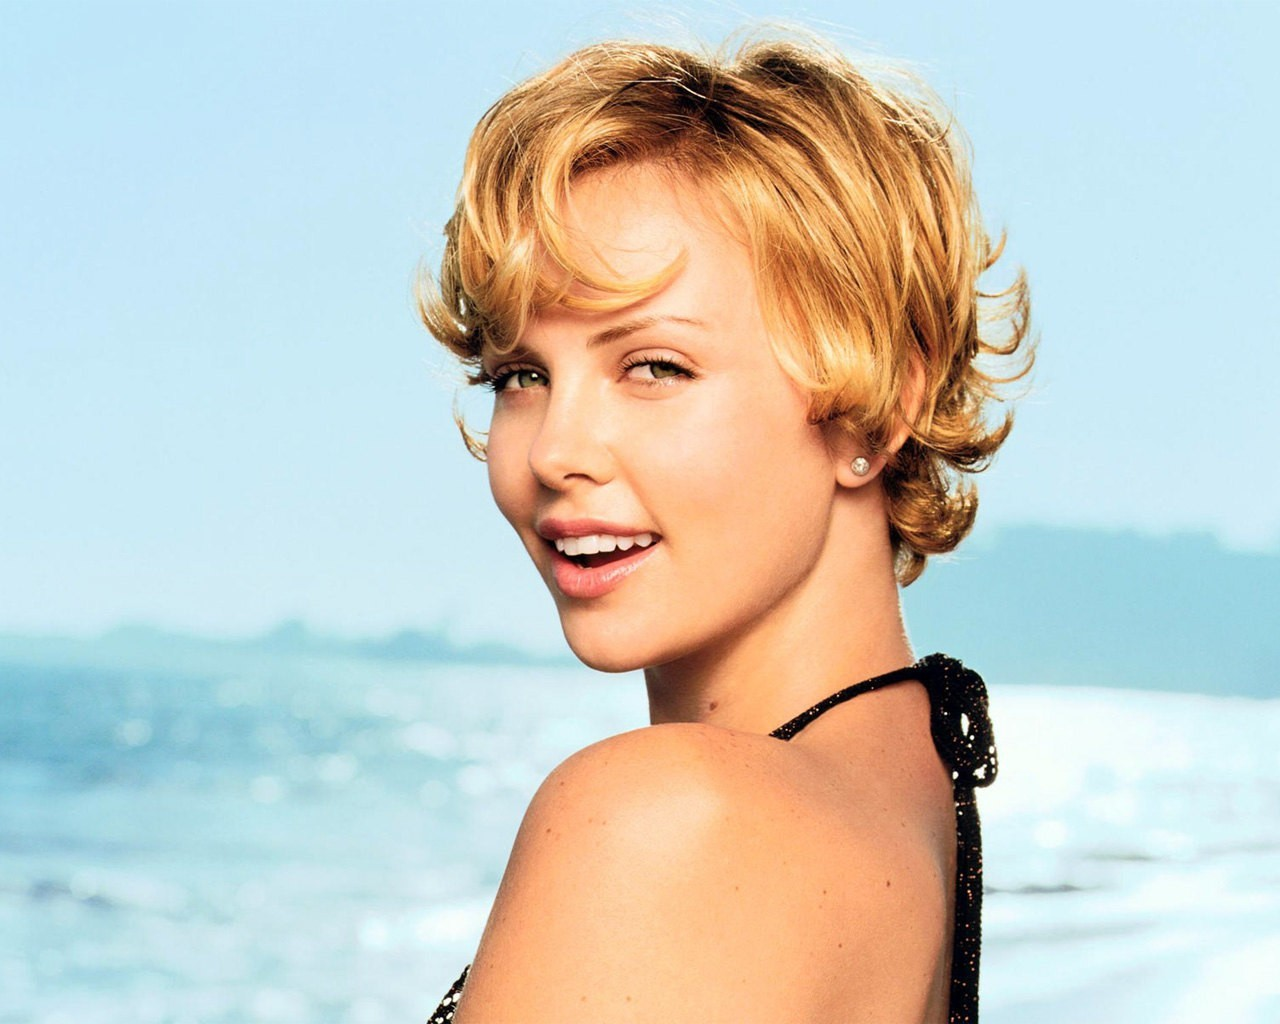 woman Actress charlize theron